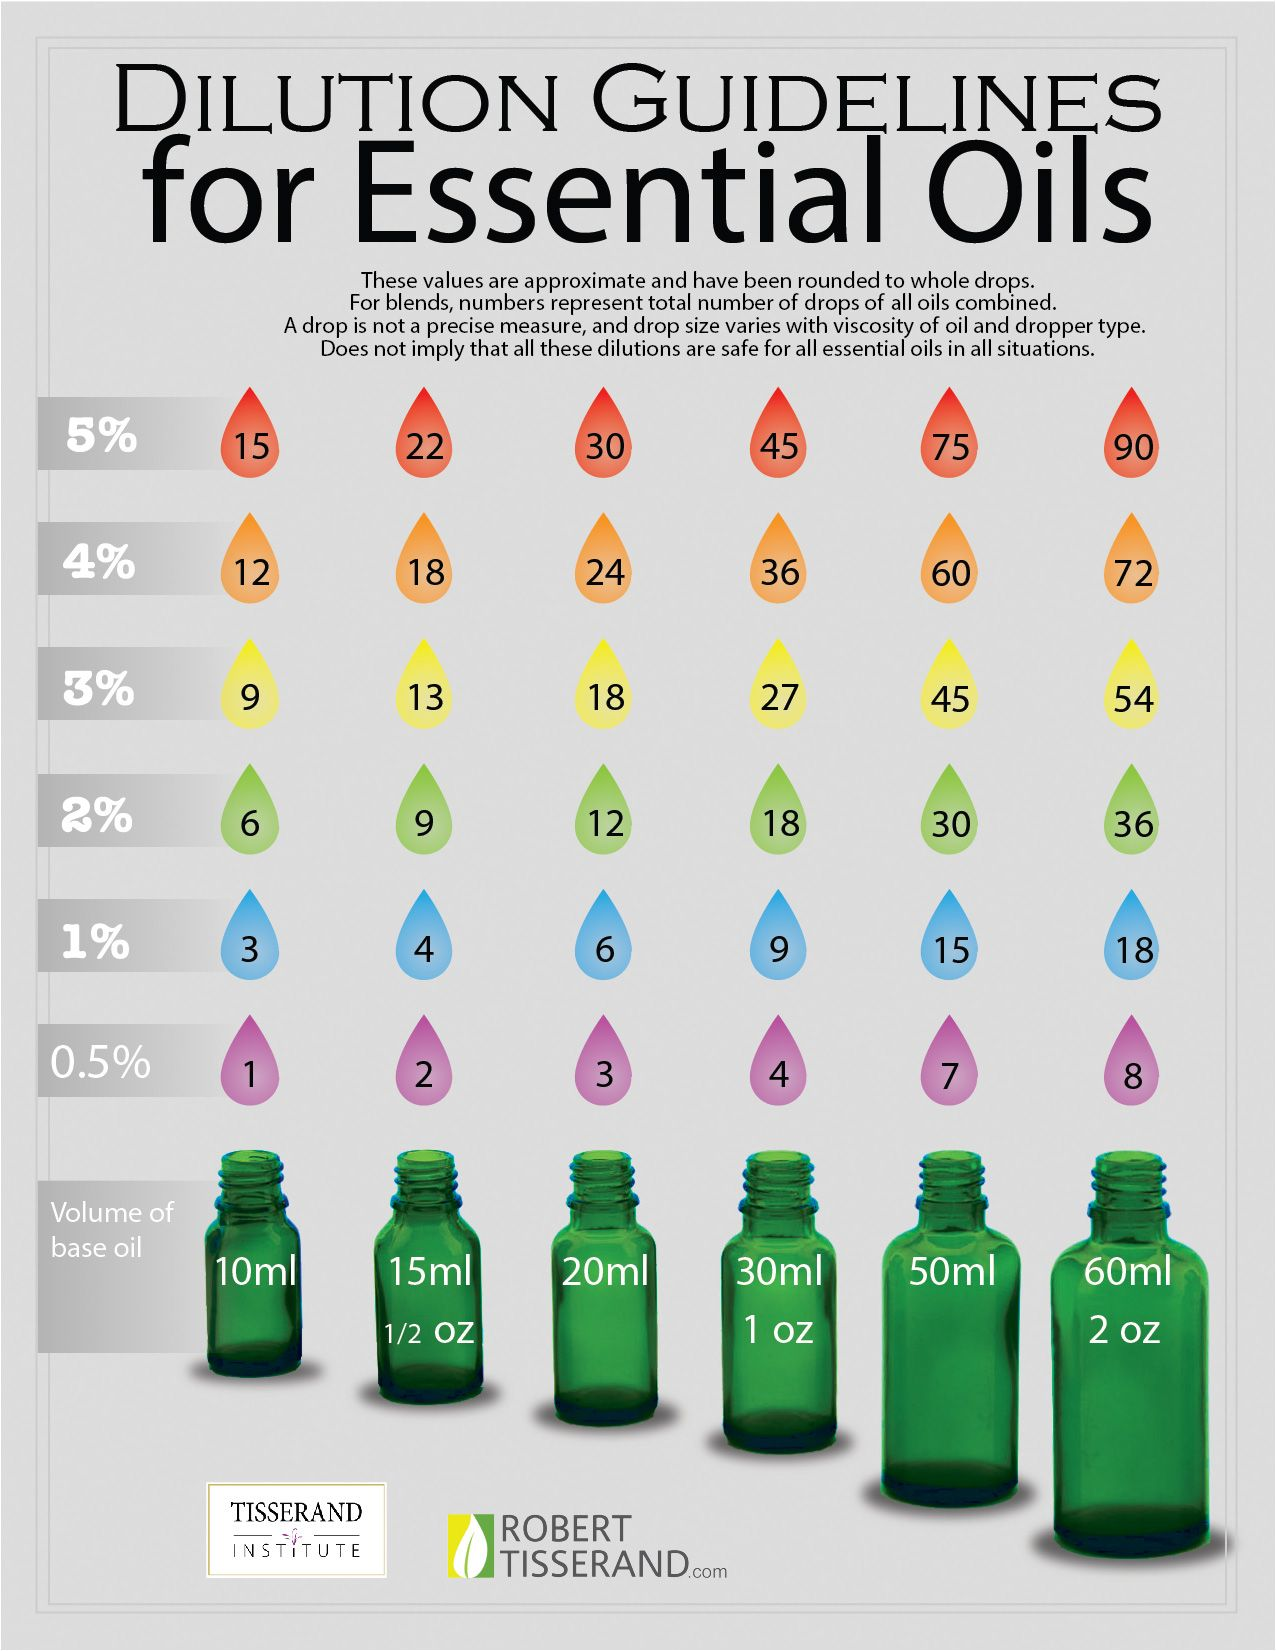 Thieves Oil Dilution Dilution Guidelines For Essential Oils From Tisserand Institute